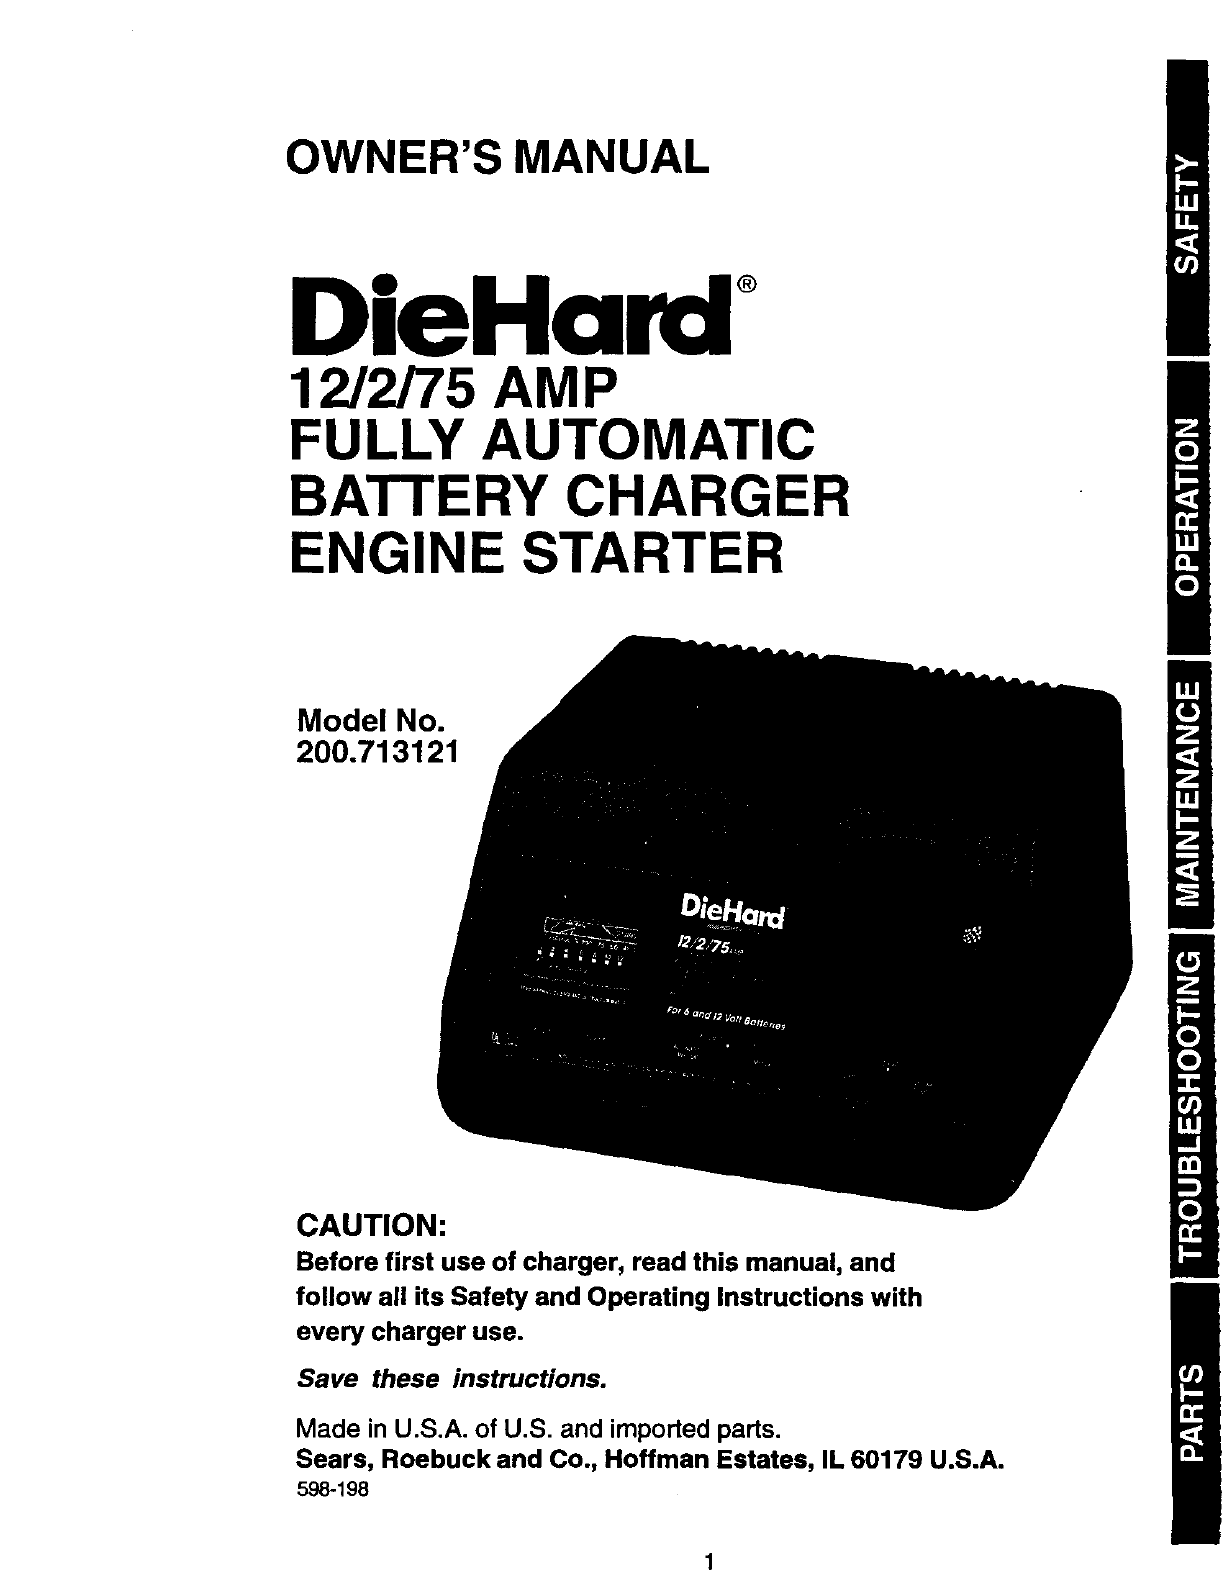 Diehard 200713121 User Manual Battery Charger Manuals And Guides Die Hard Wiring Diagram L0305320